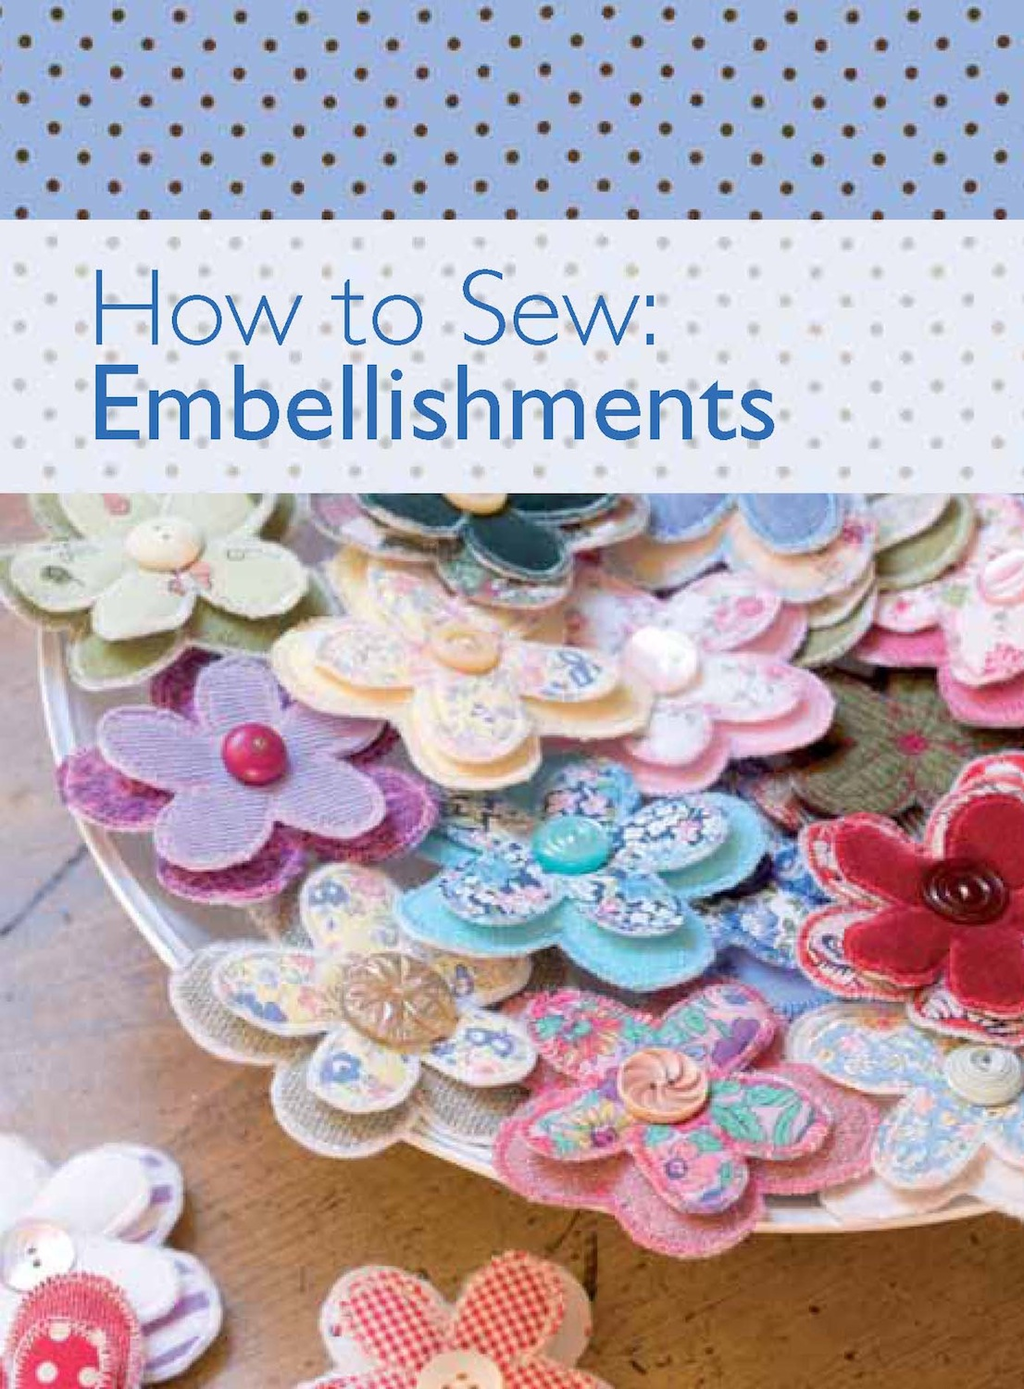 How to Sew - Embellishments